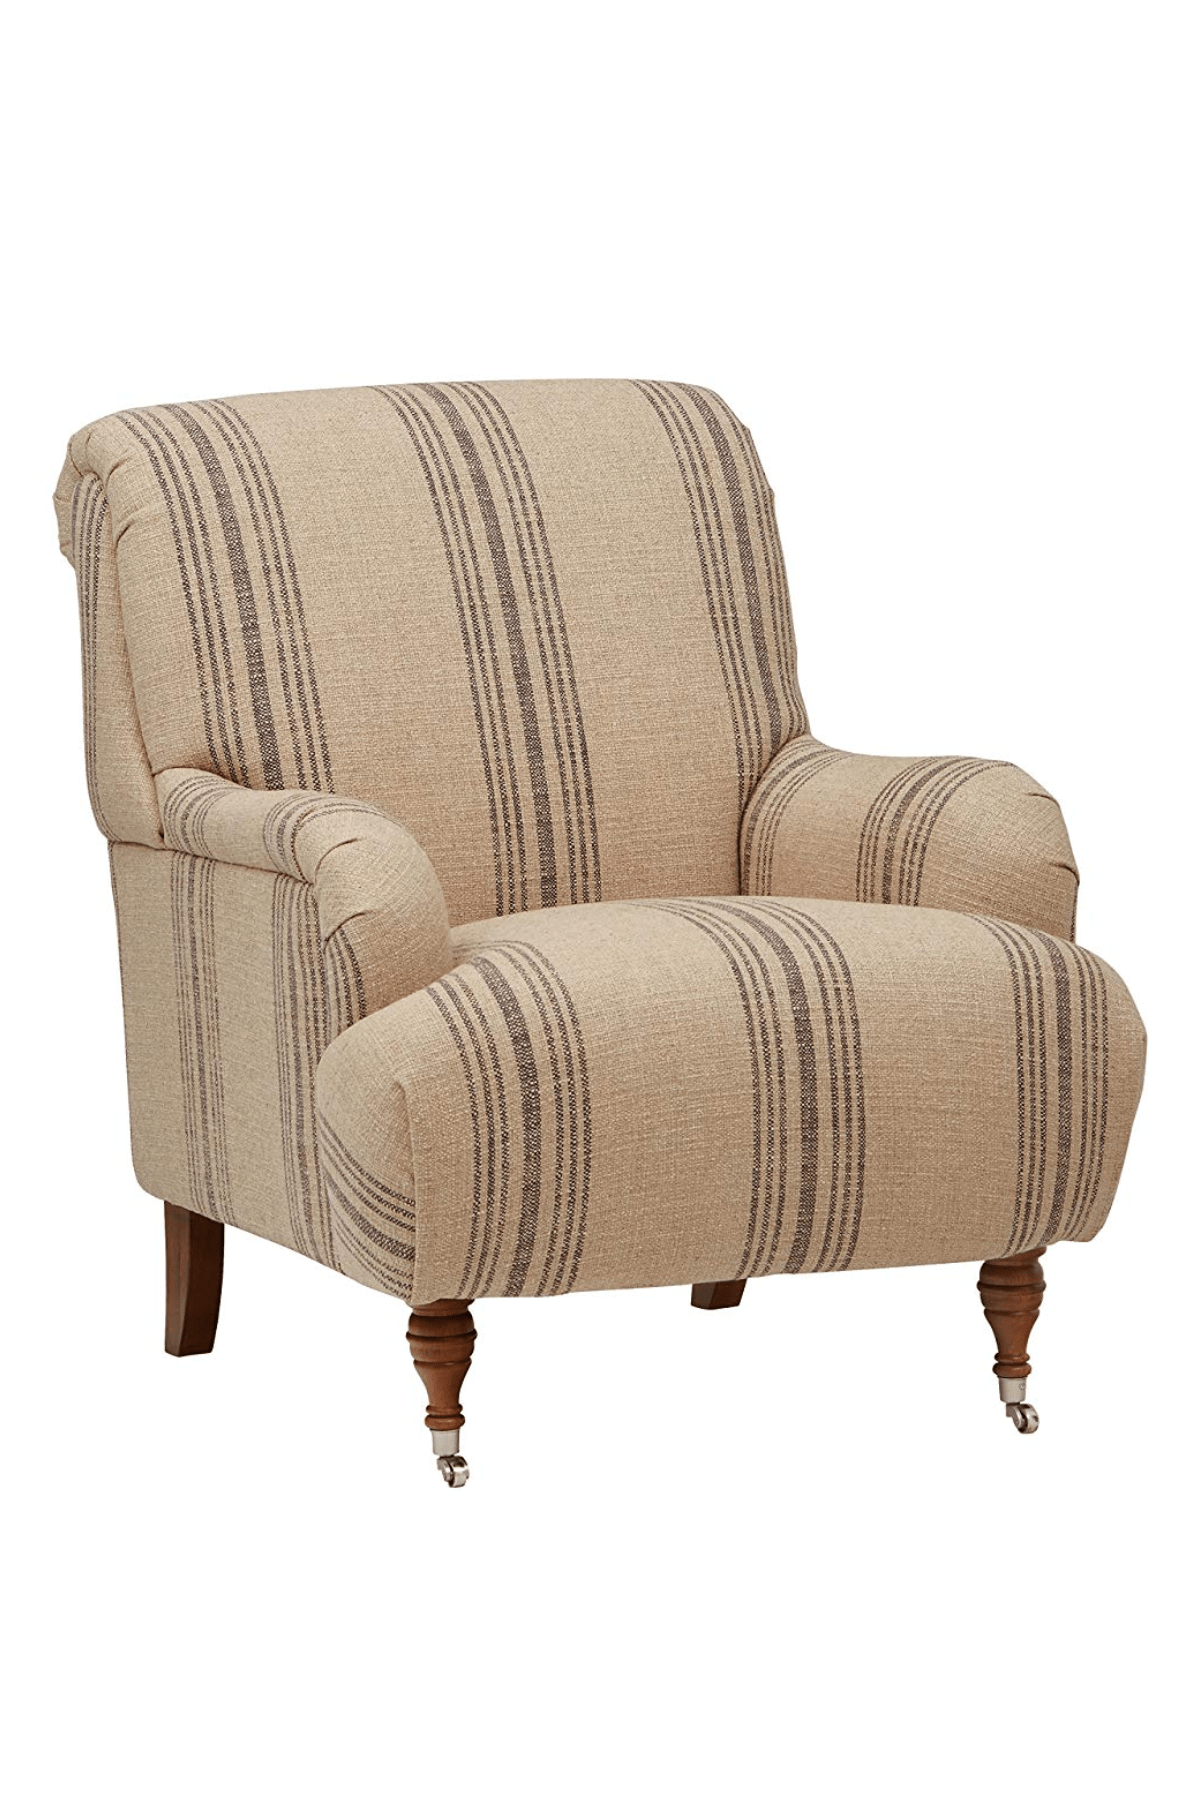 Oversized Reading Chair With Ottoman Aubree Farmhouse Accent Chair